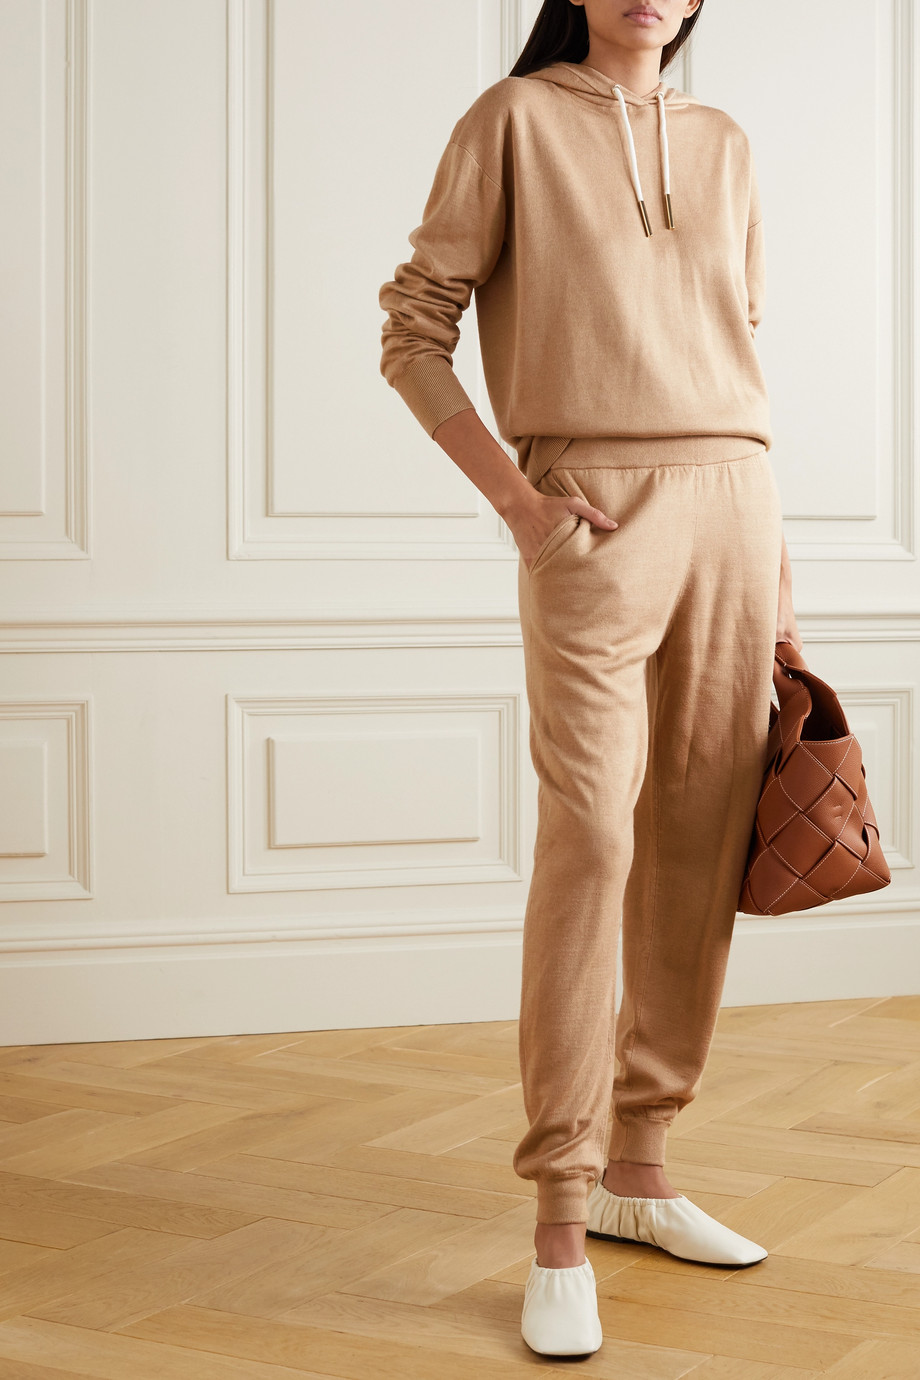 OLIVIA VON HALLE Gia Shanghai silk and cashmere-blend hoodie and track pants set